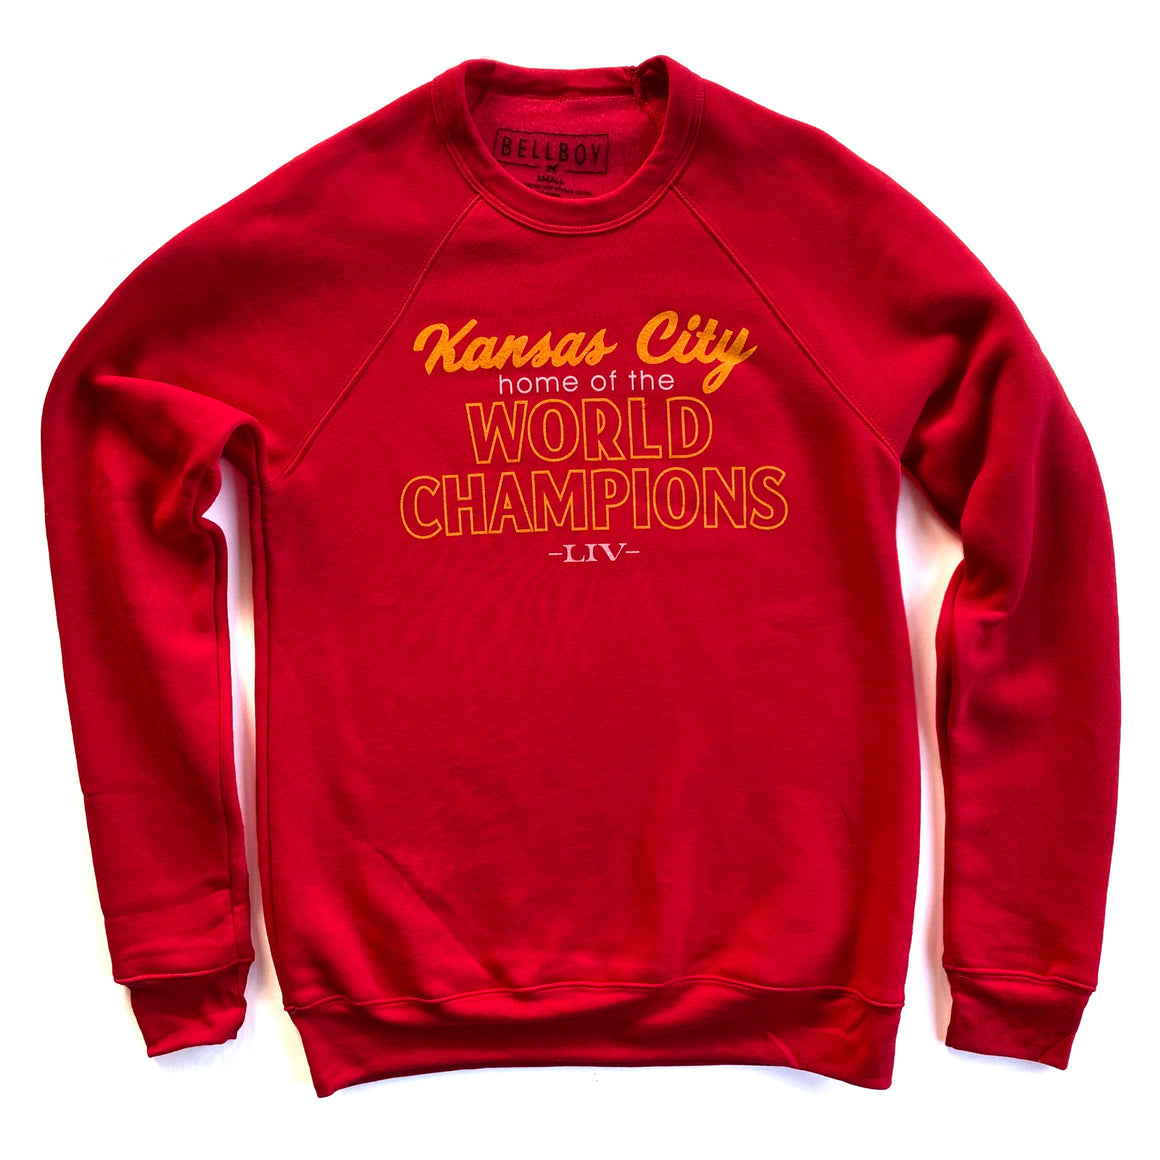 BELLBOY | KANSAS CITY WORLD CHAMPIONS SWEATSHIRT - RED